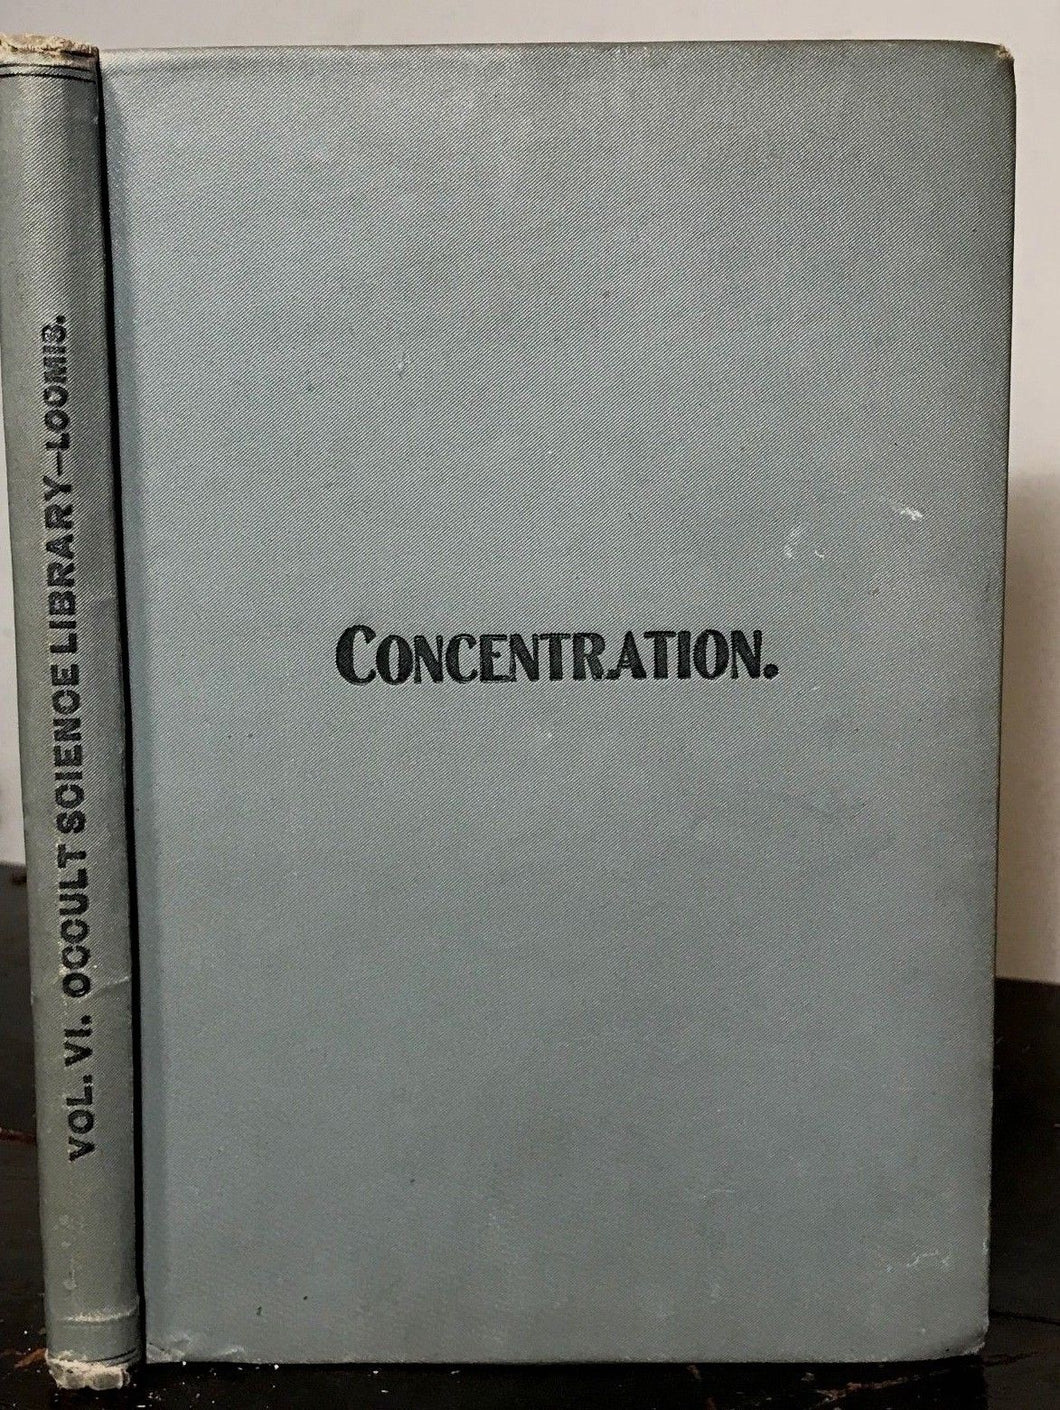 CONCENTRATION: Development of Occult Forces - Occult Science Library, LOOMIS